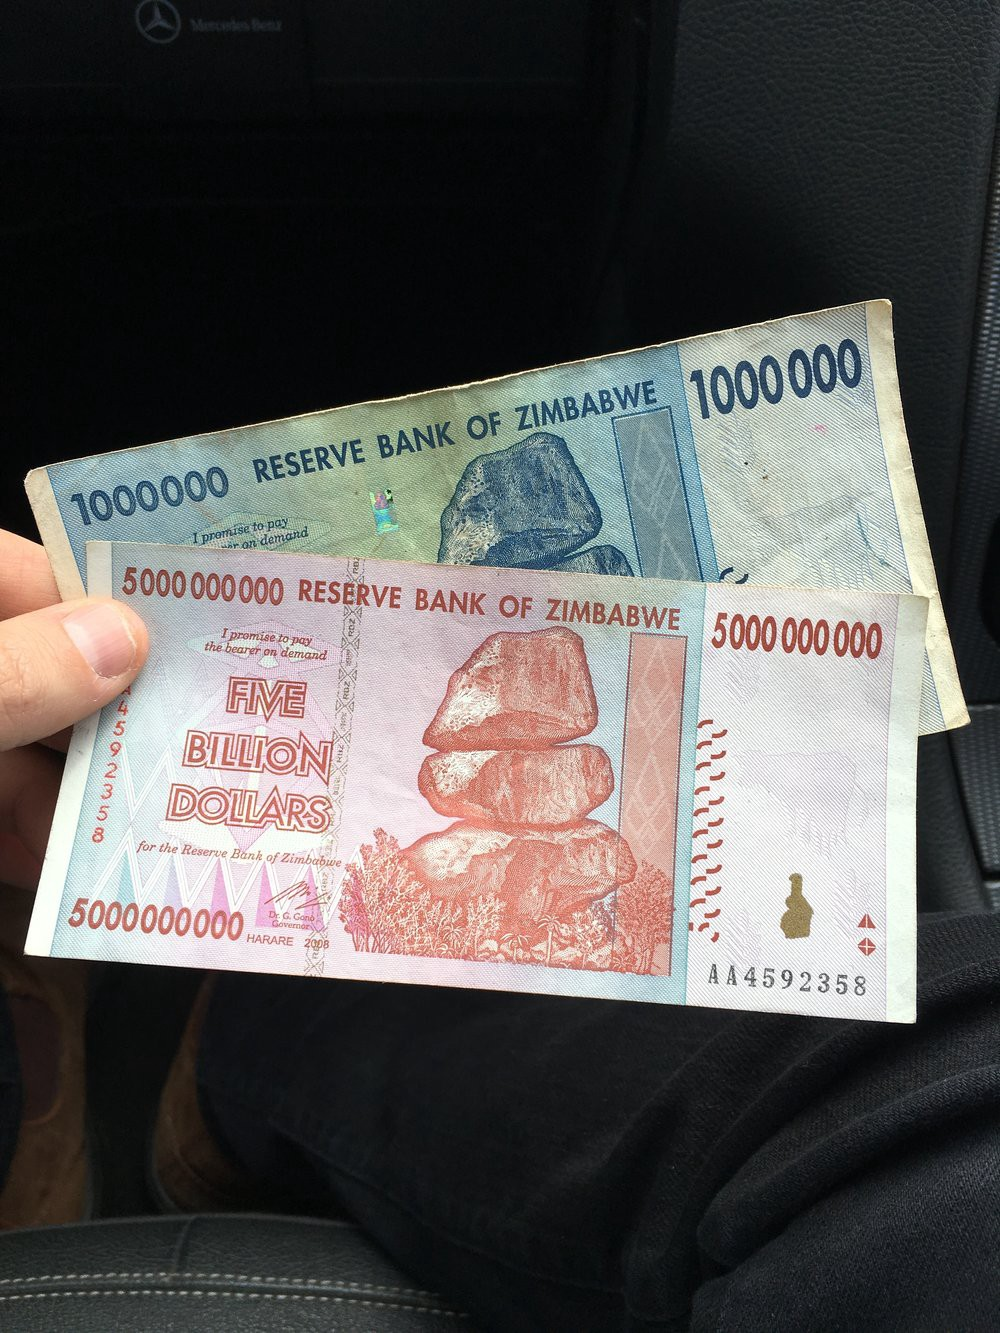 The Zimbabwean economy broke world records of hyperinflation twice in the past decade